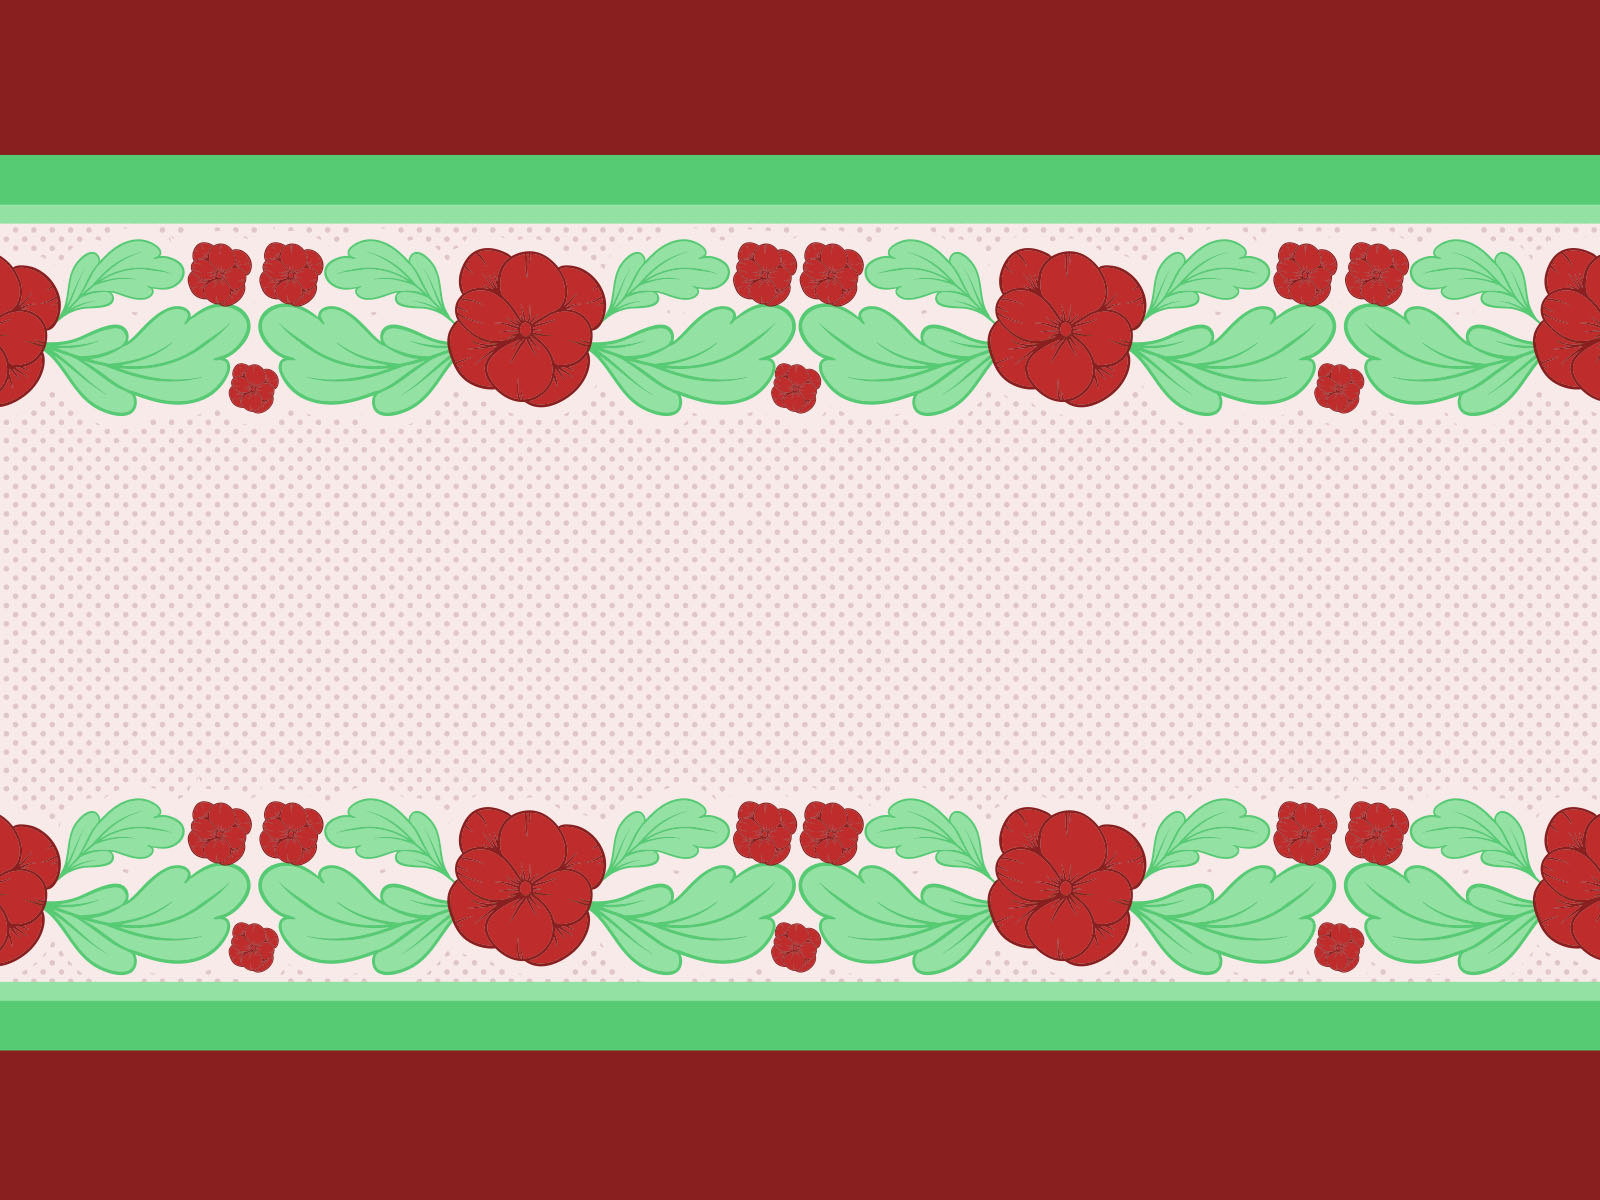 Flower Borders PPT Backgrounds